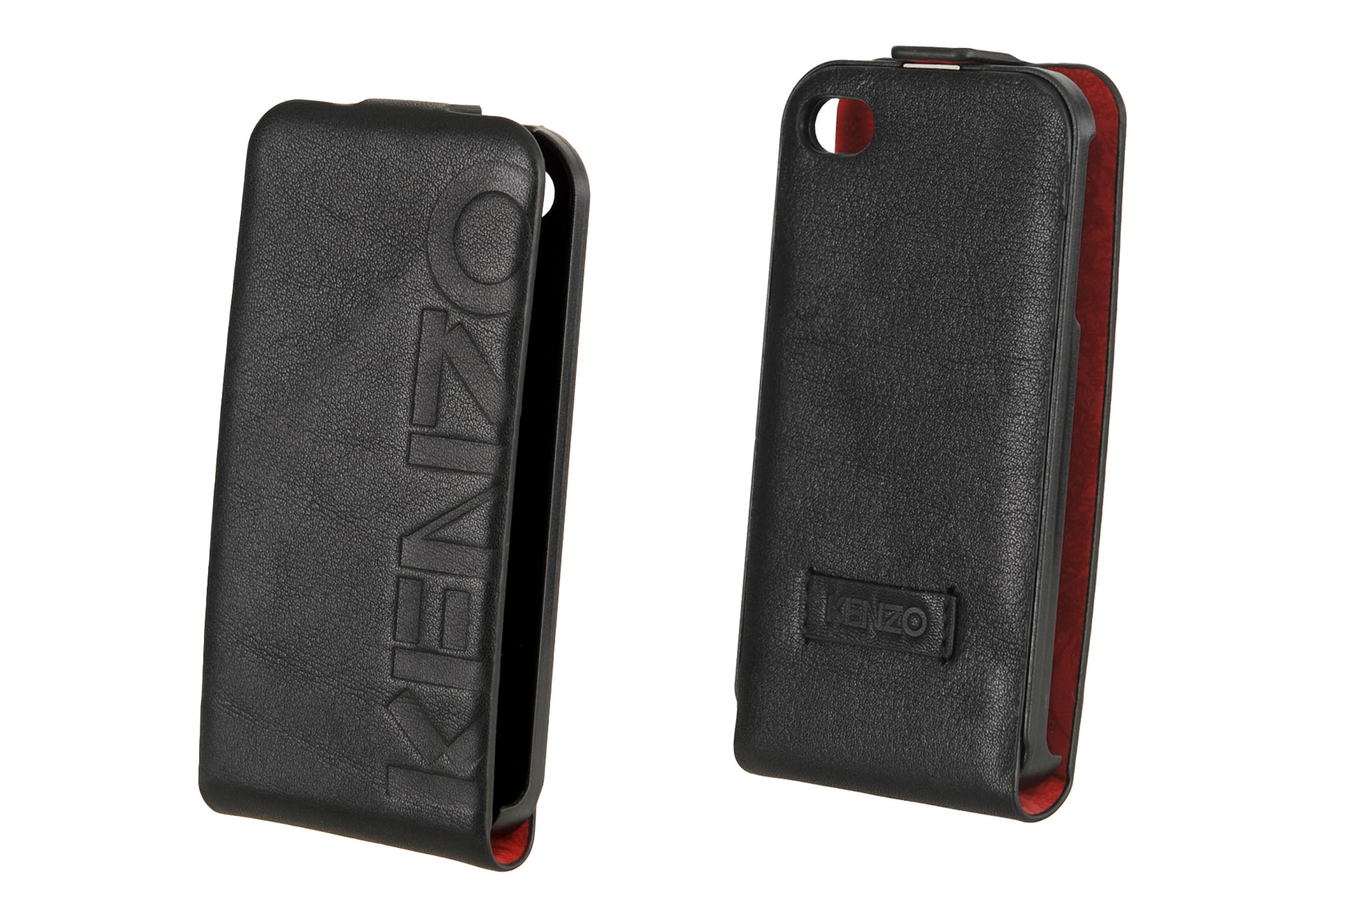 Housse pour iphone kenzo etui cuir iphone 4 4s 1328697 for Iphone housse cuir